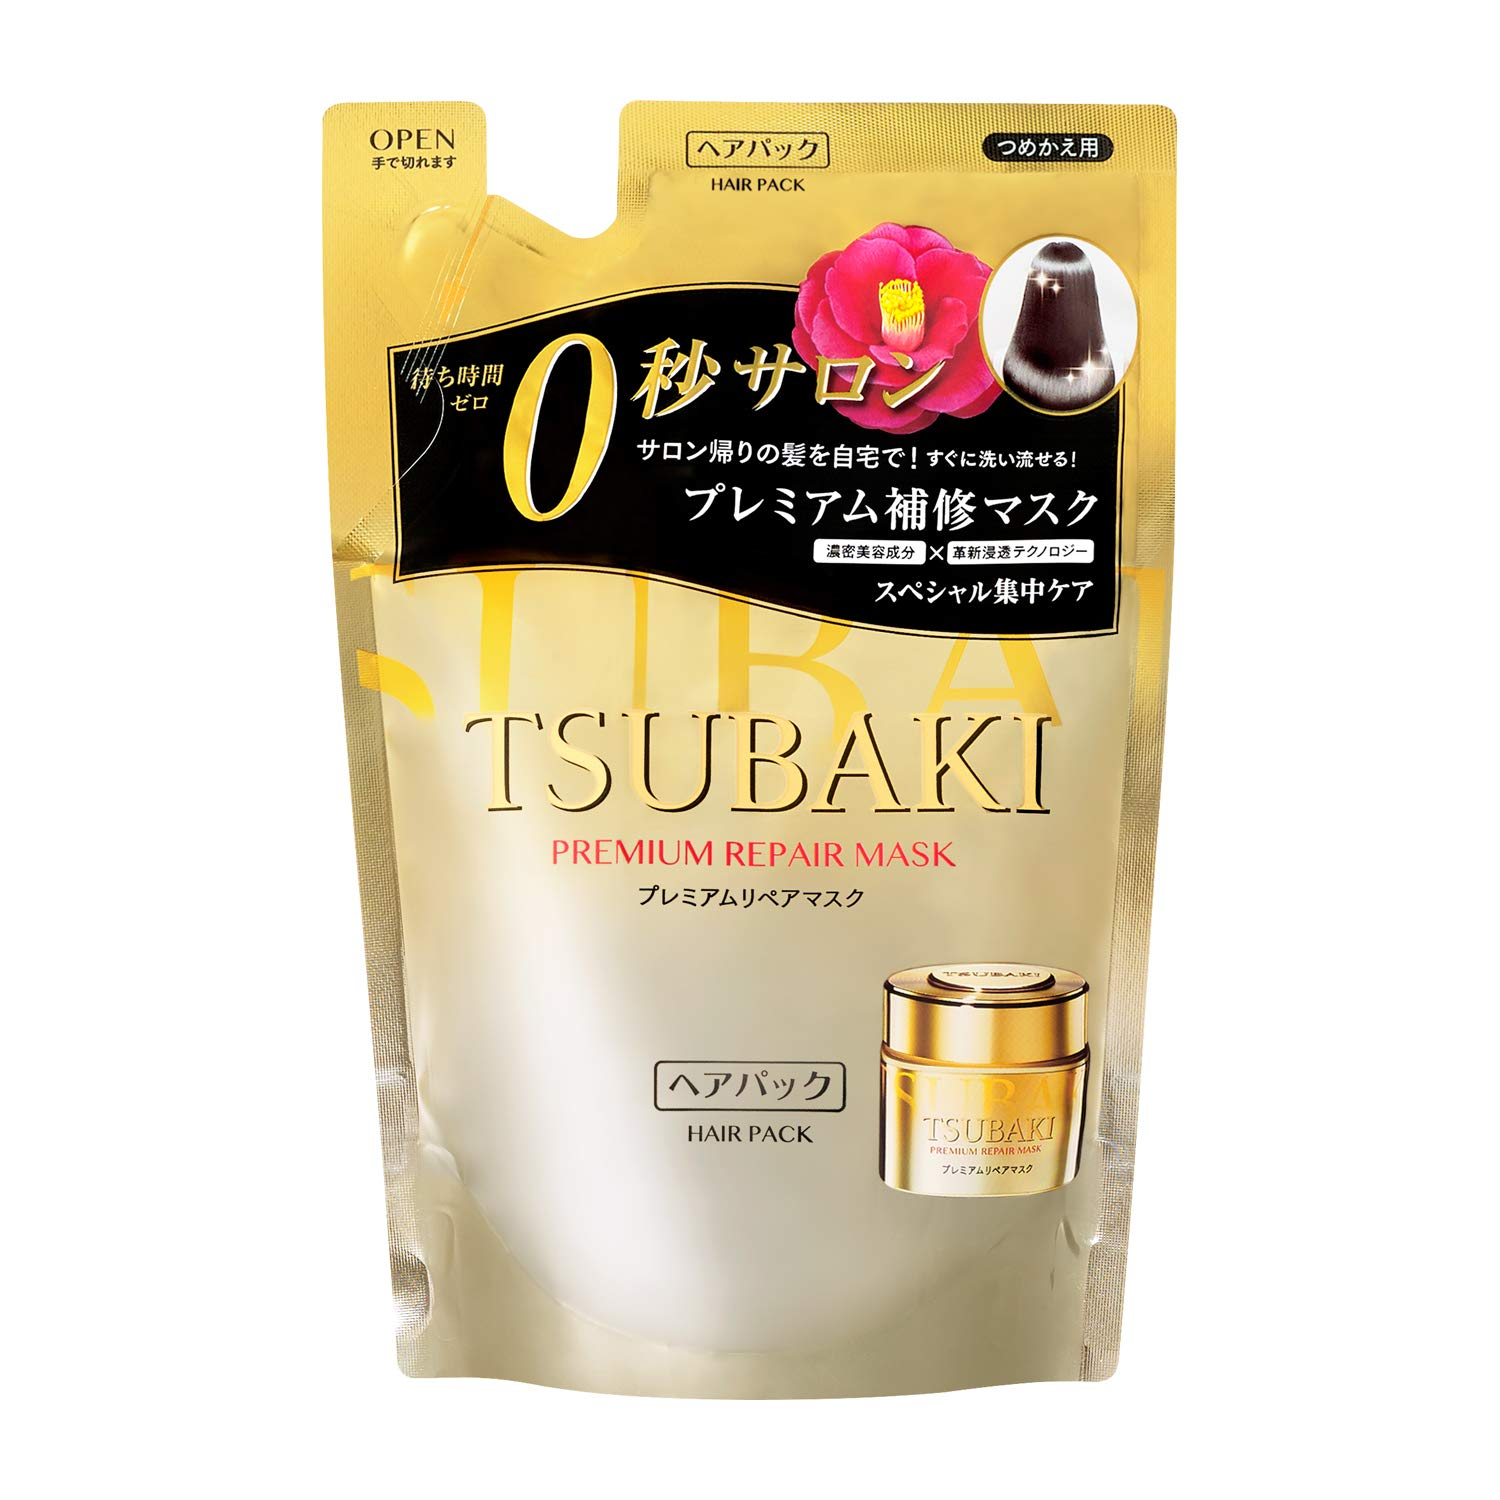 Limited time Attention brand cheap sale TSUBAKI Premium treatment repair mask Japan 5.2o imported Refill